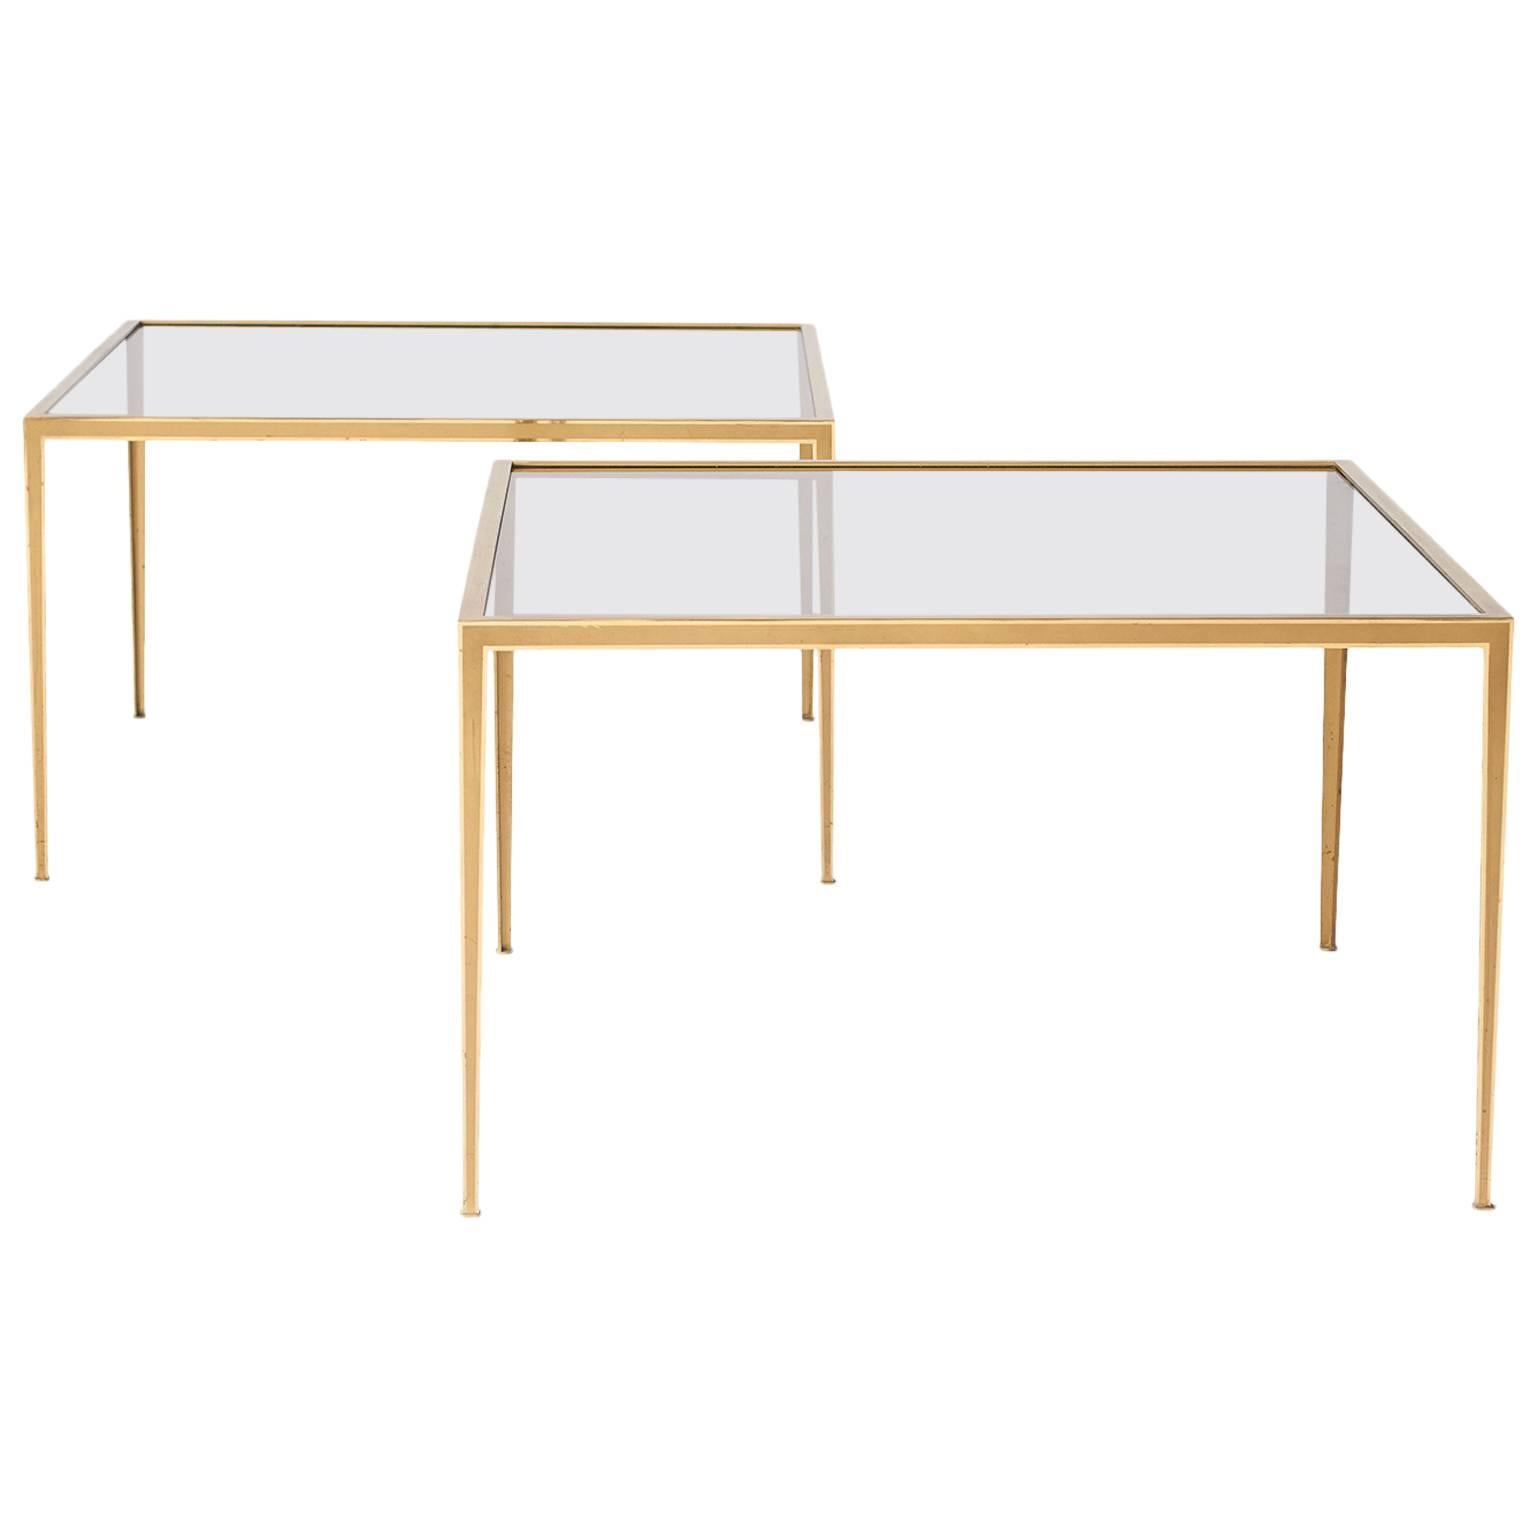 Pair of Brass Square Form Werkstatte Coffee Tables